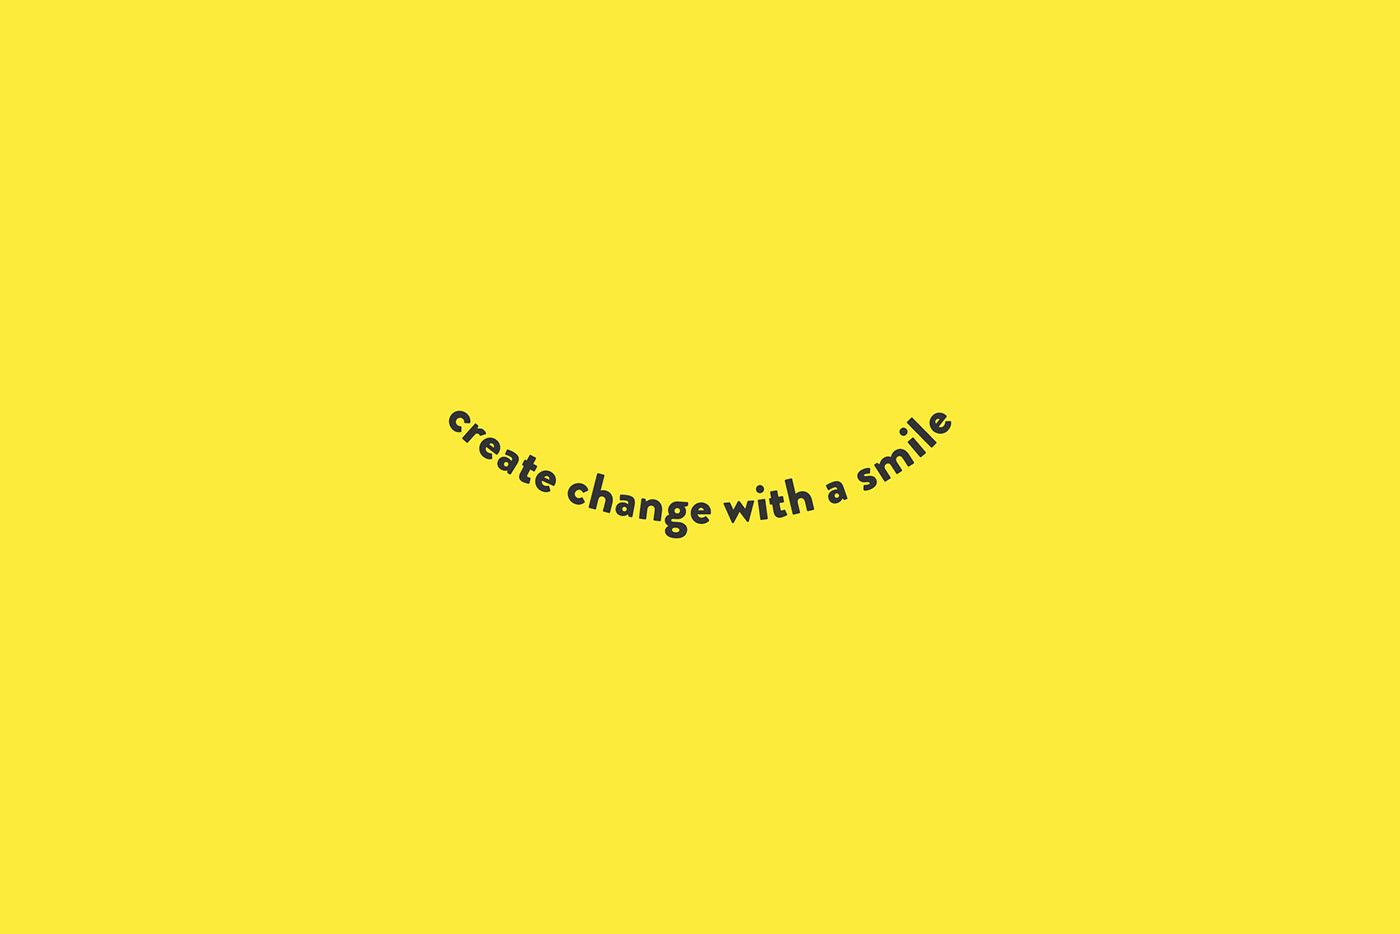 create change with a smile logo